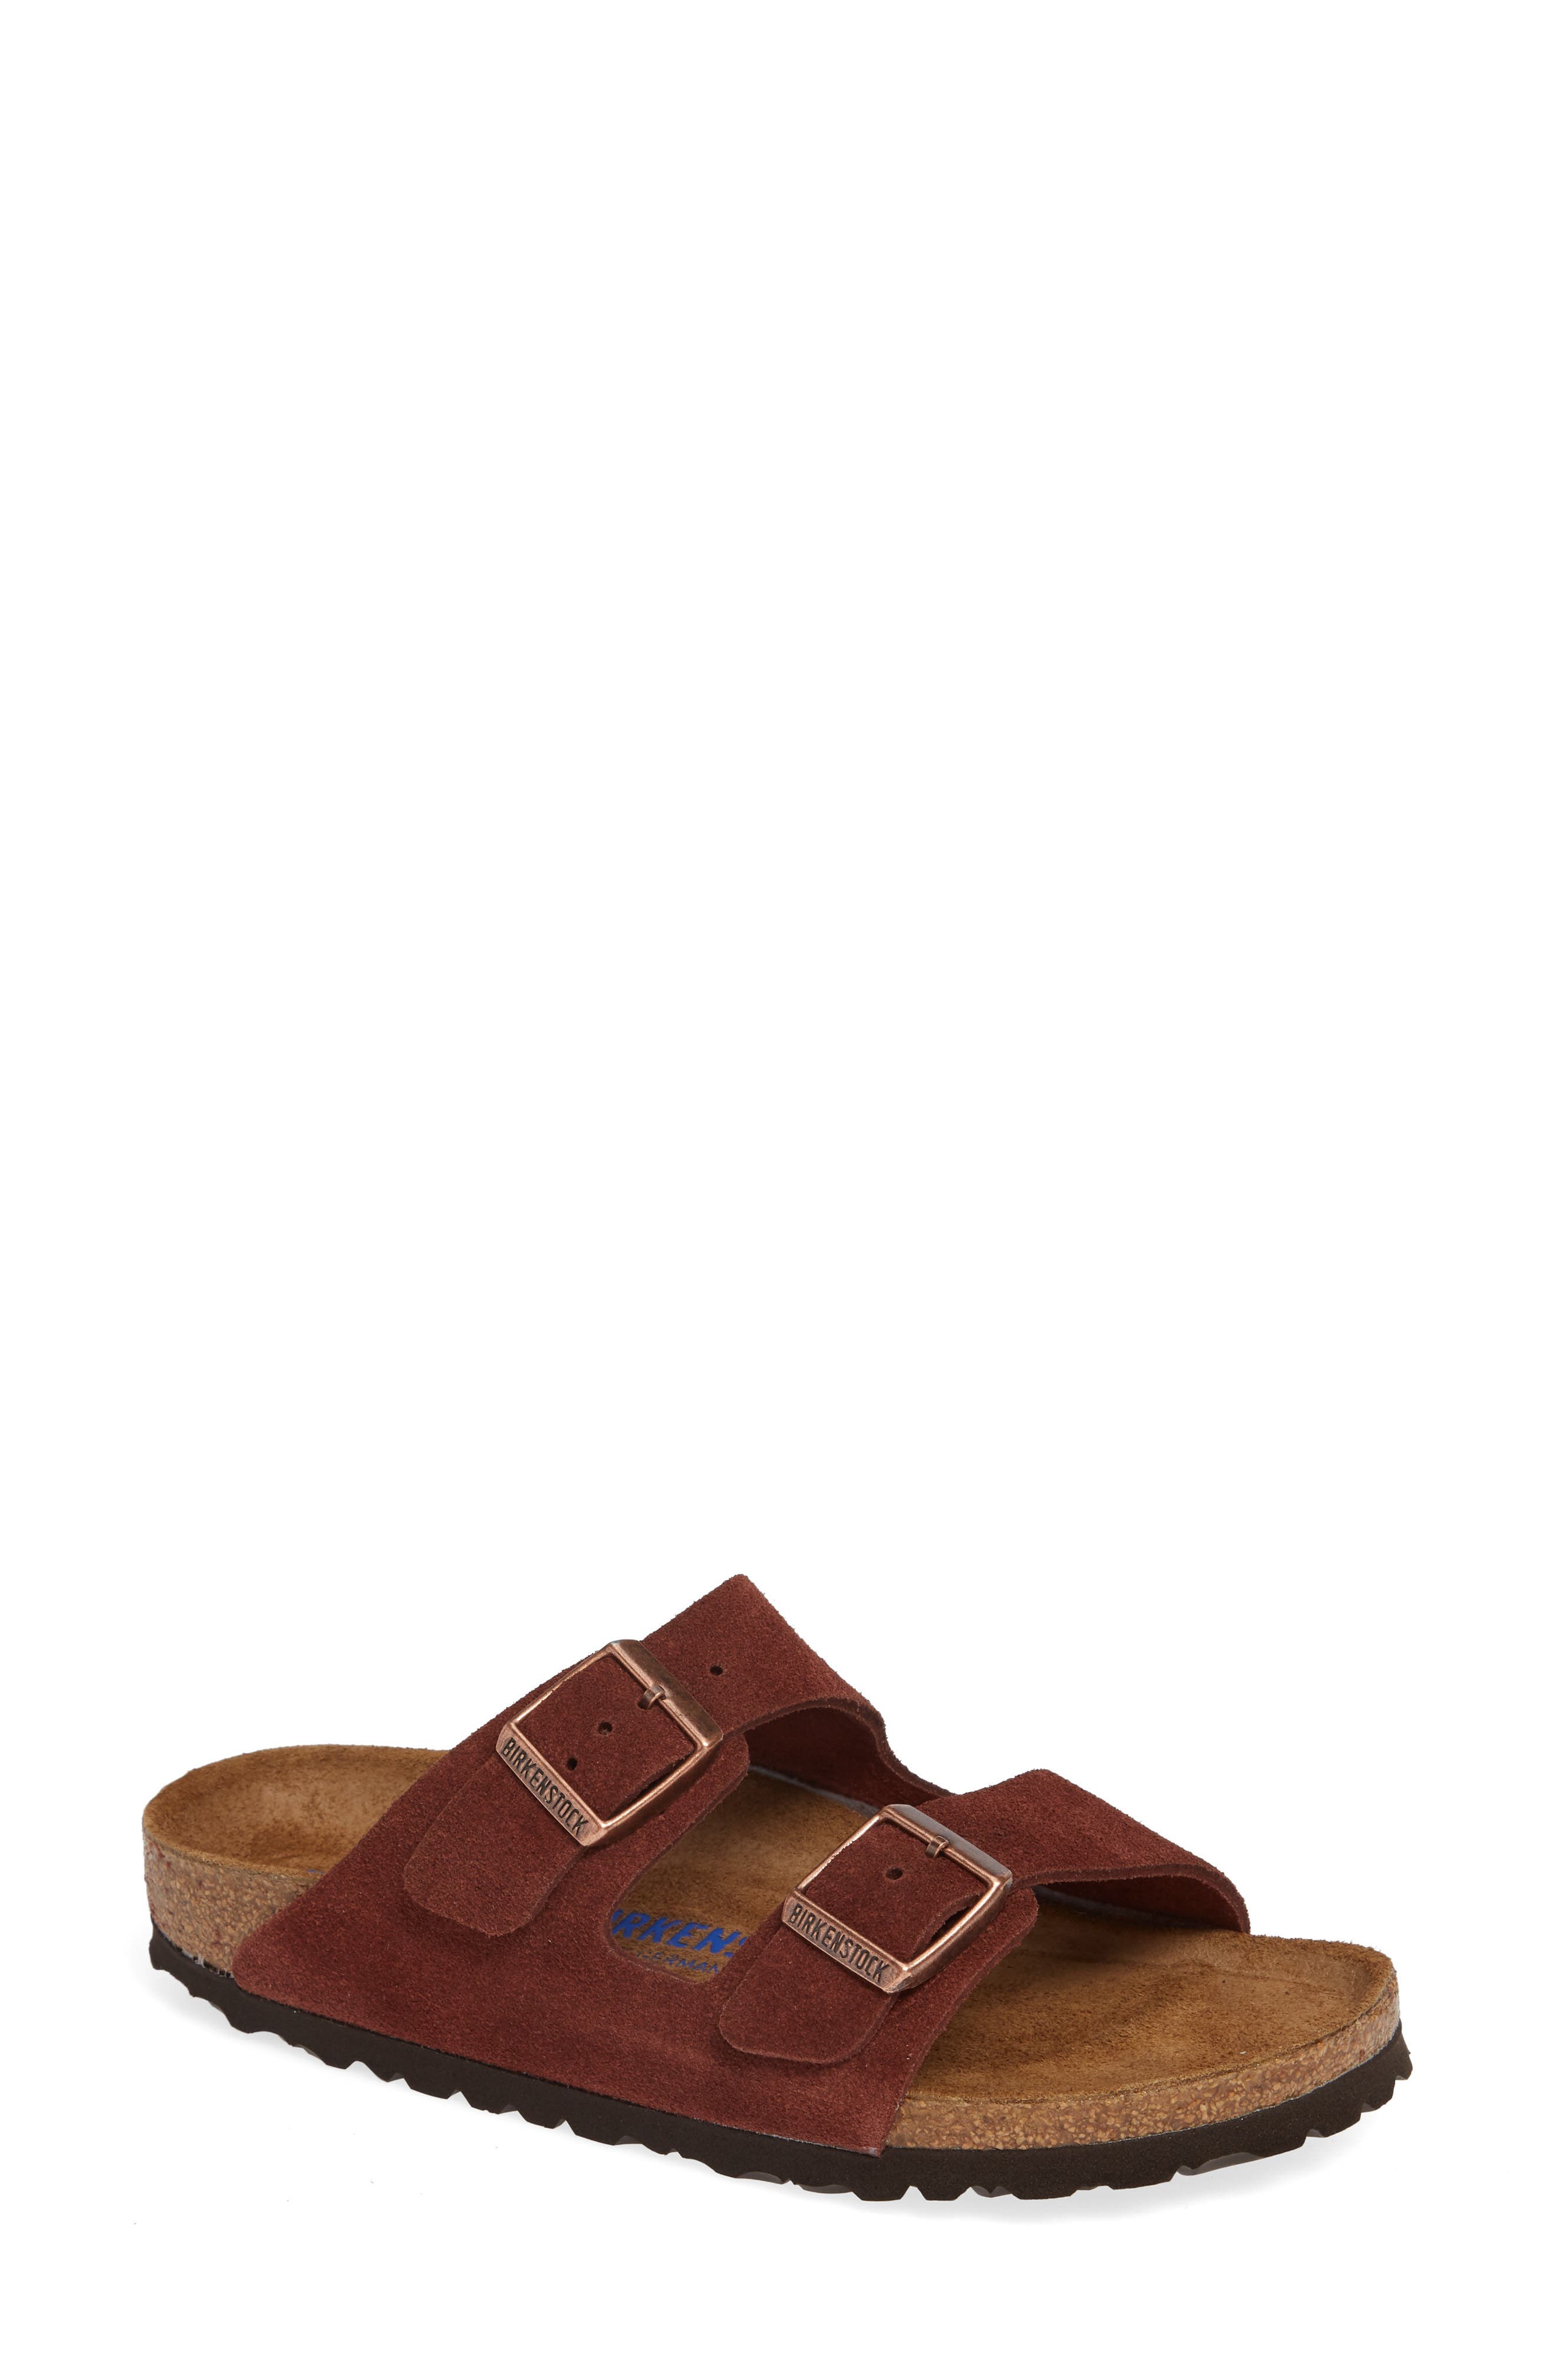 'Arizona' Soft Footbed Suede Sandal,                             Main thumbnail 1, color,                             PORT SUEDE